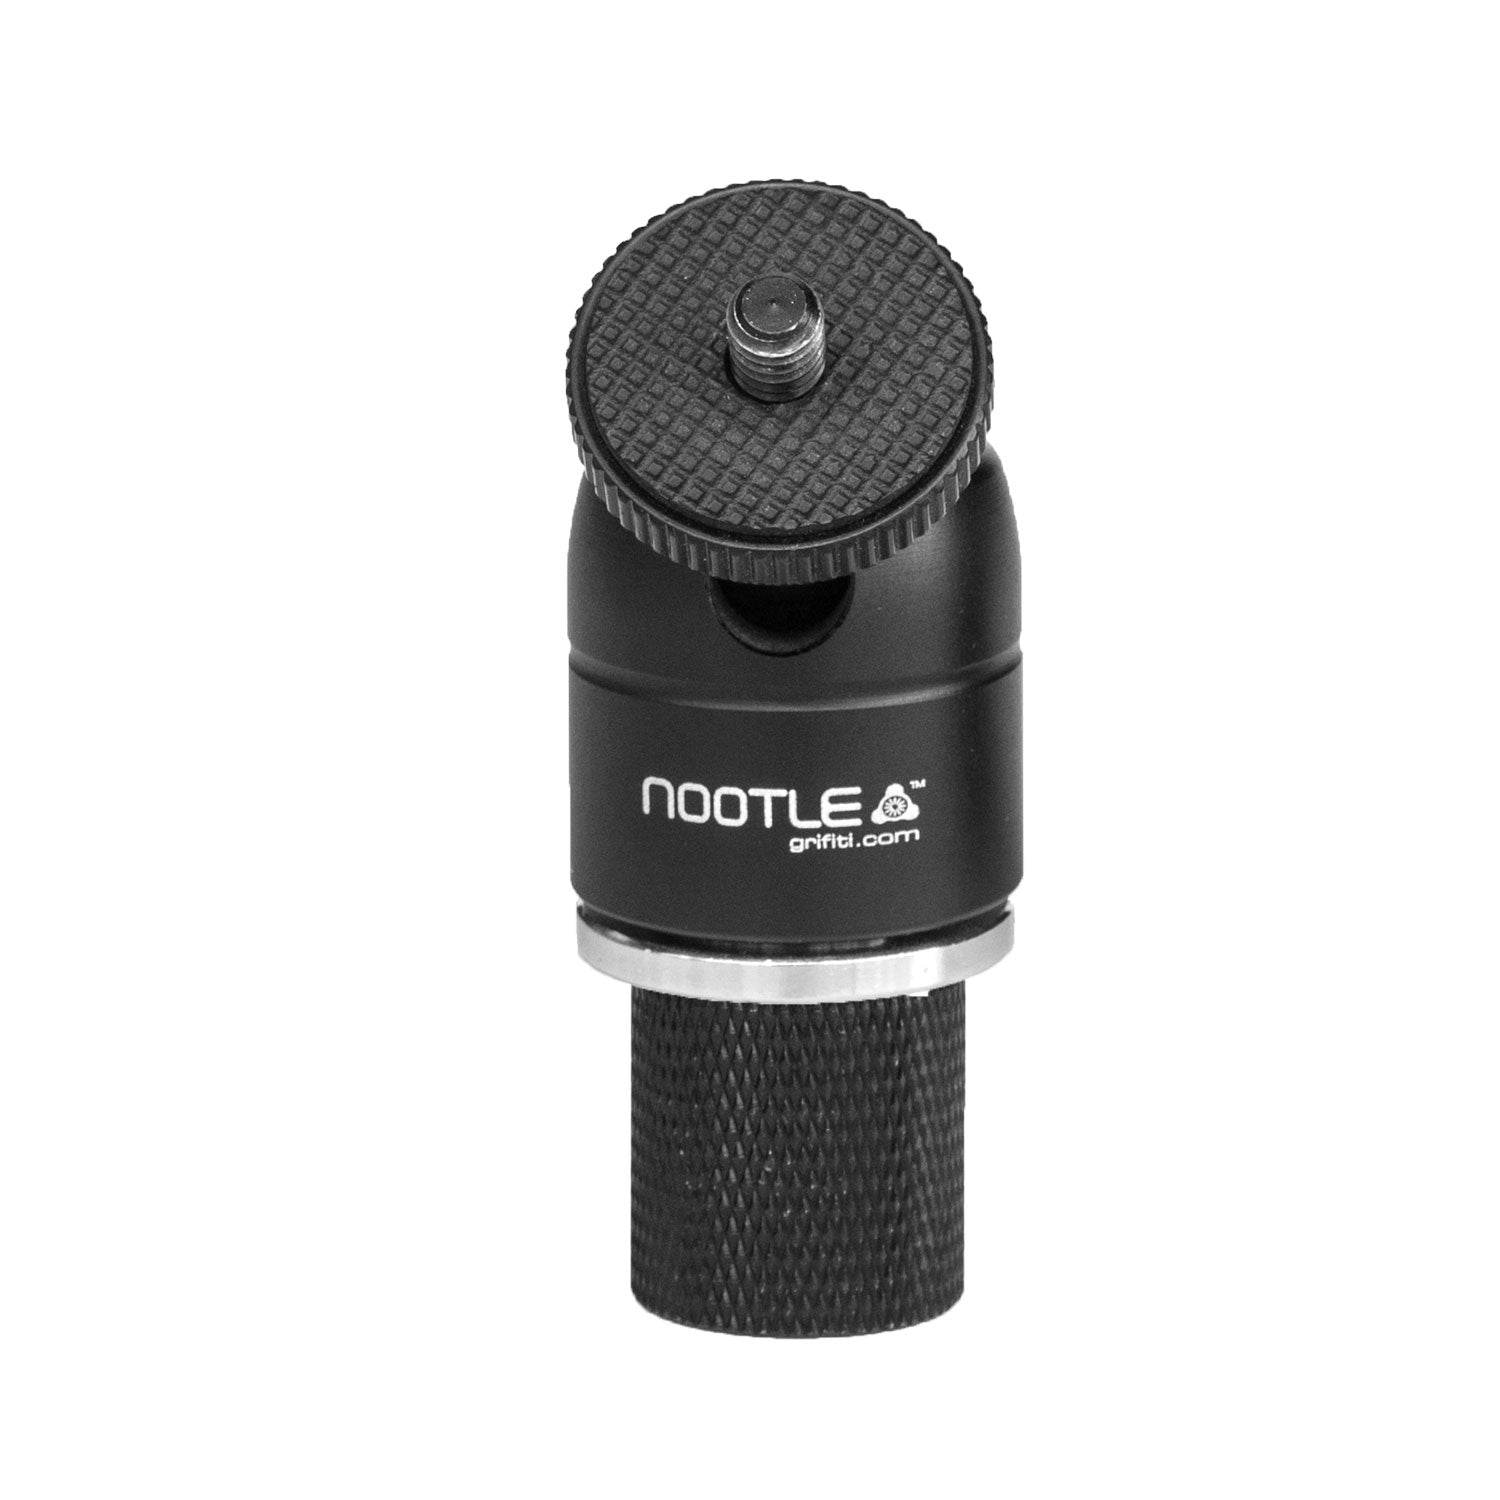 Grifiti Nootle Mic Music Stand Adapter and Mini Ball Head Camera Videos Mounts - Grifiti